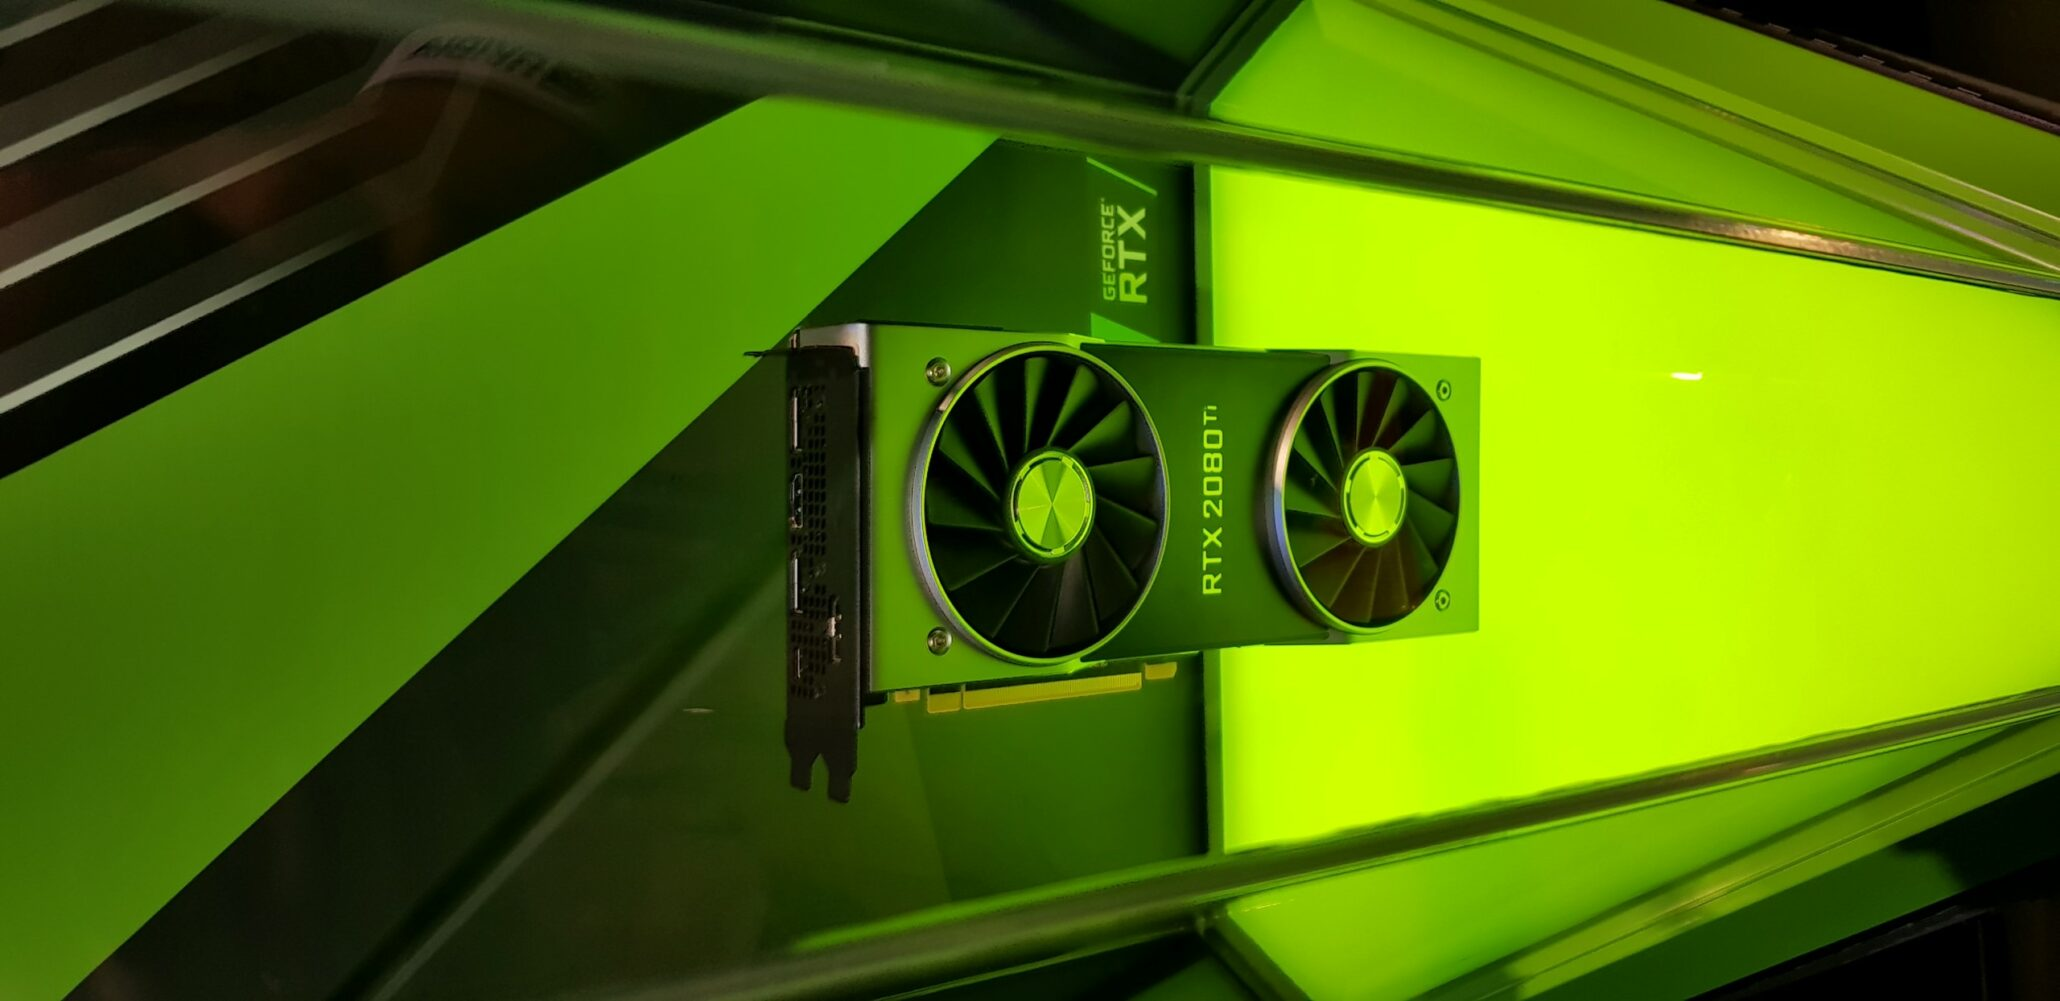 NVIDIA GeForce RTX 2080 Ti Performance Revealed, Delivers